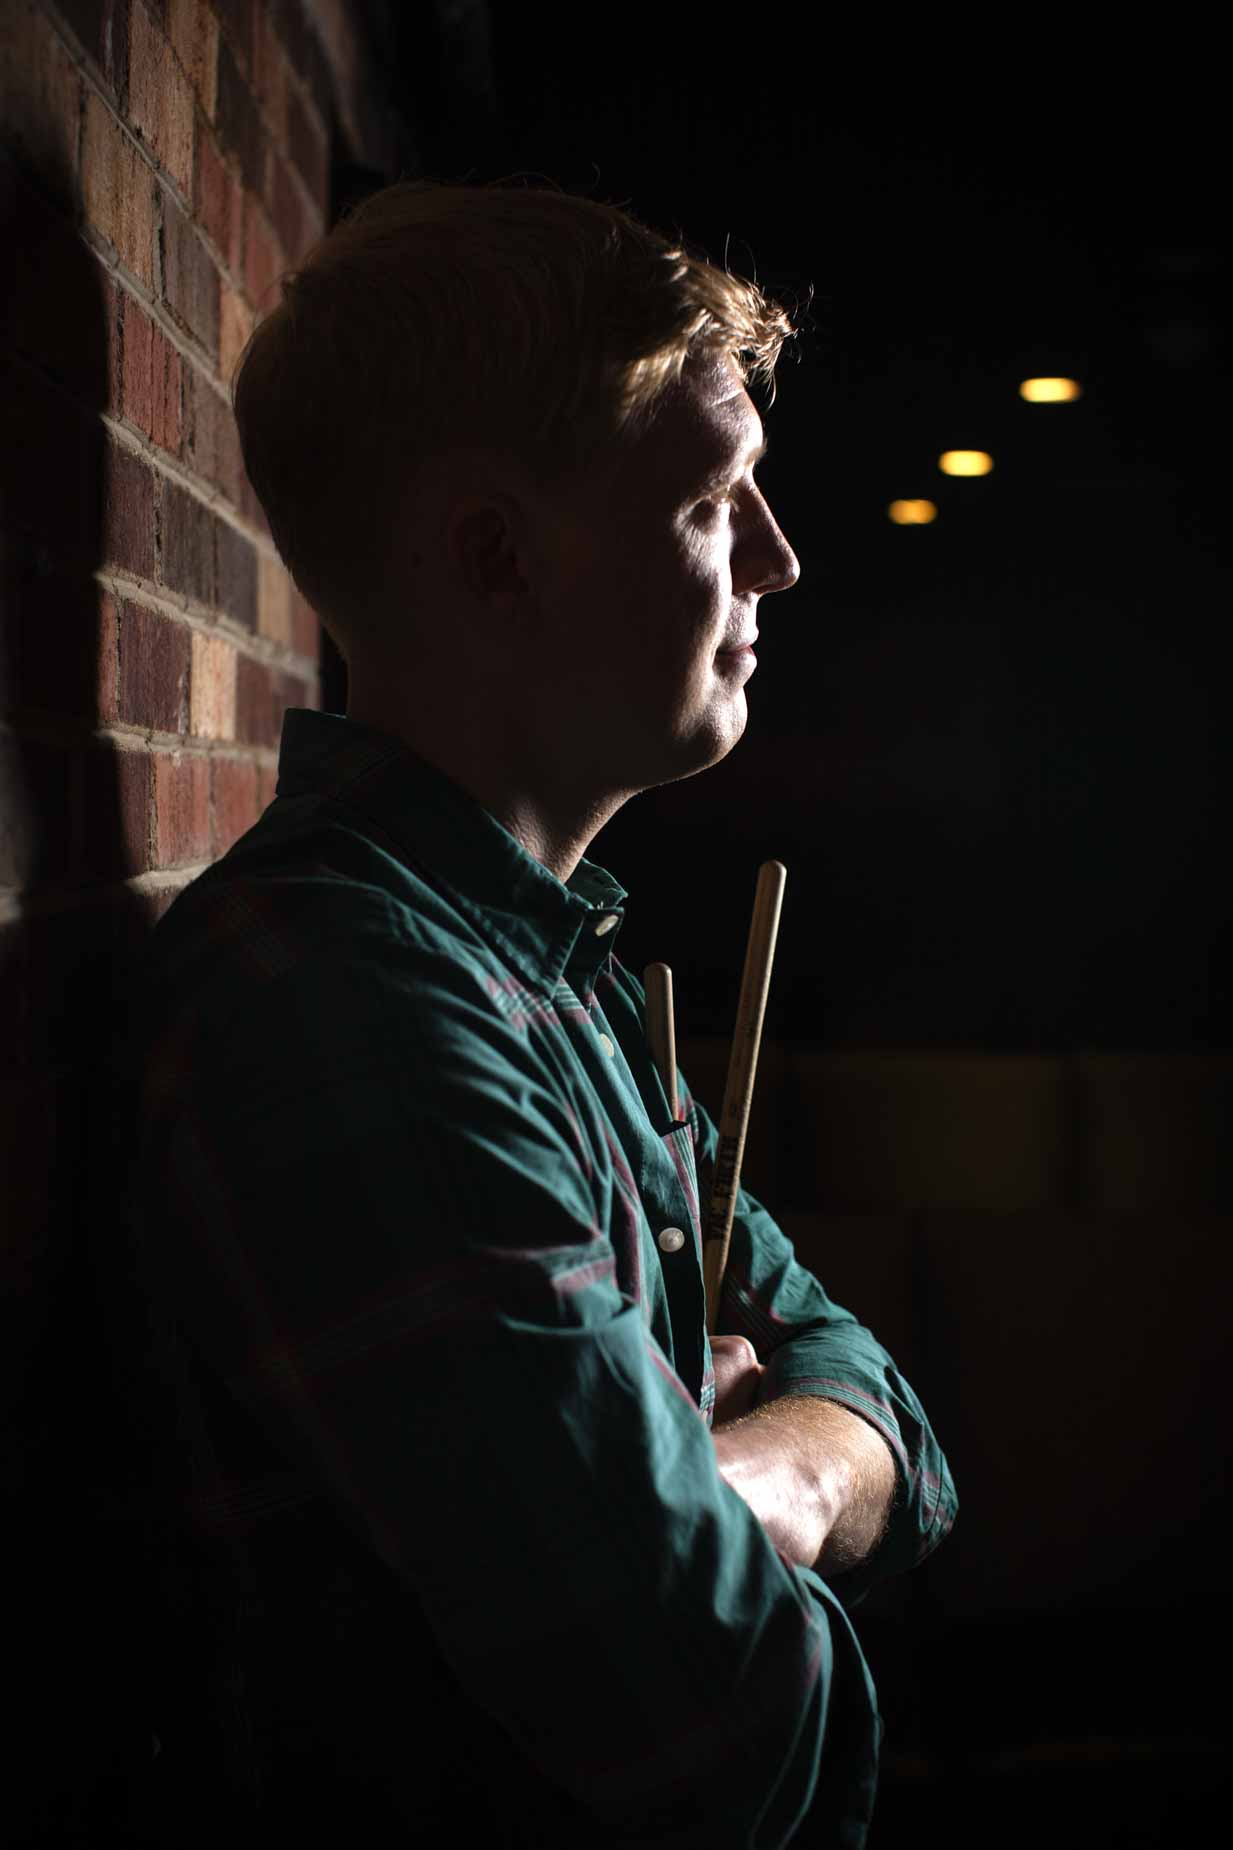 Musician Portraits: Philadelphia Creative Portrait Photographer: Zave Smith